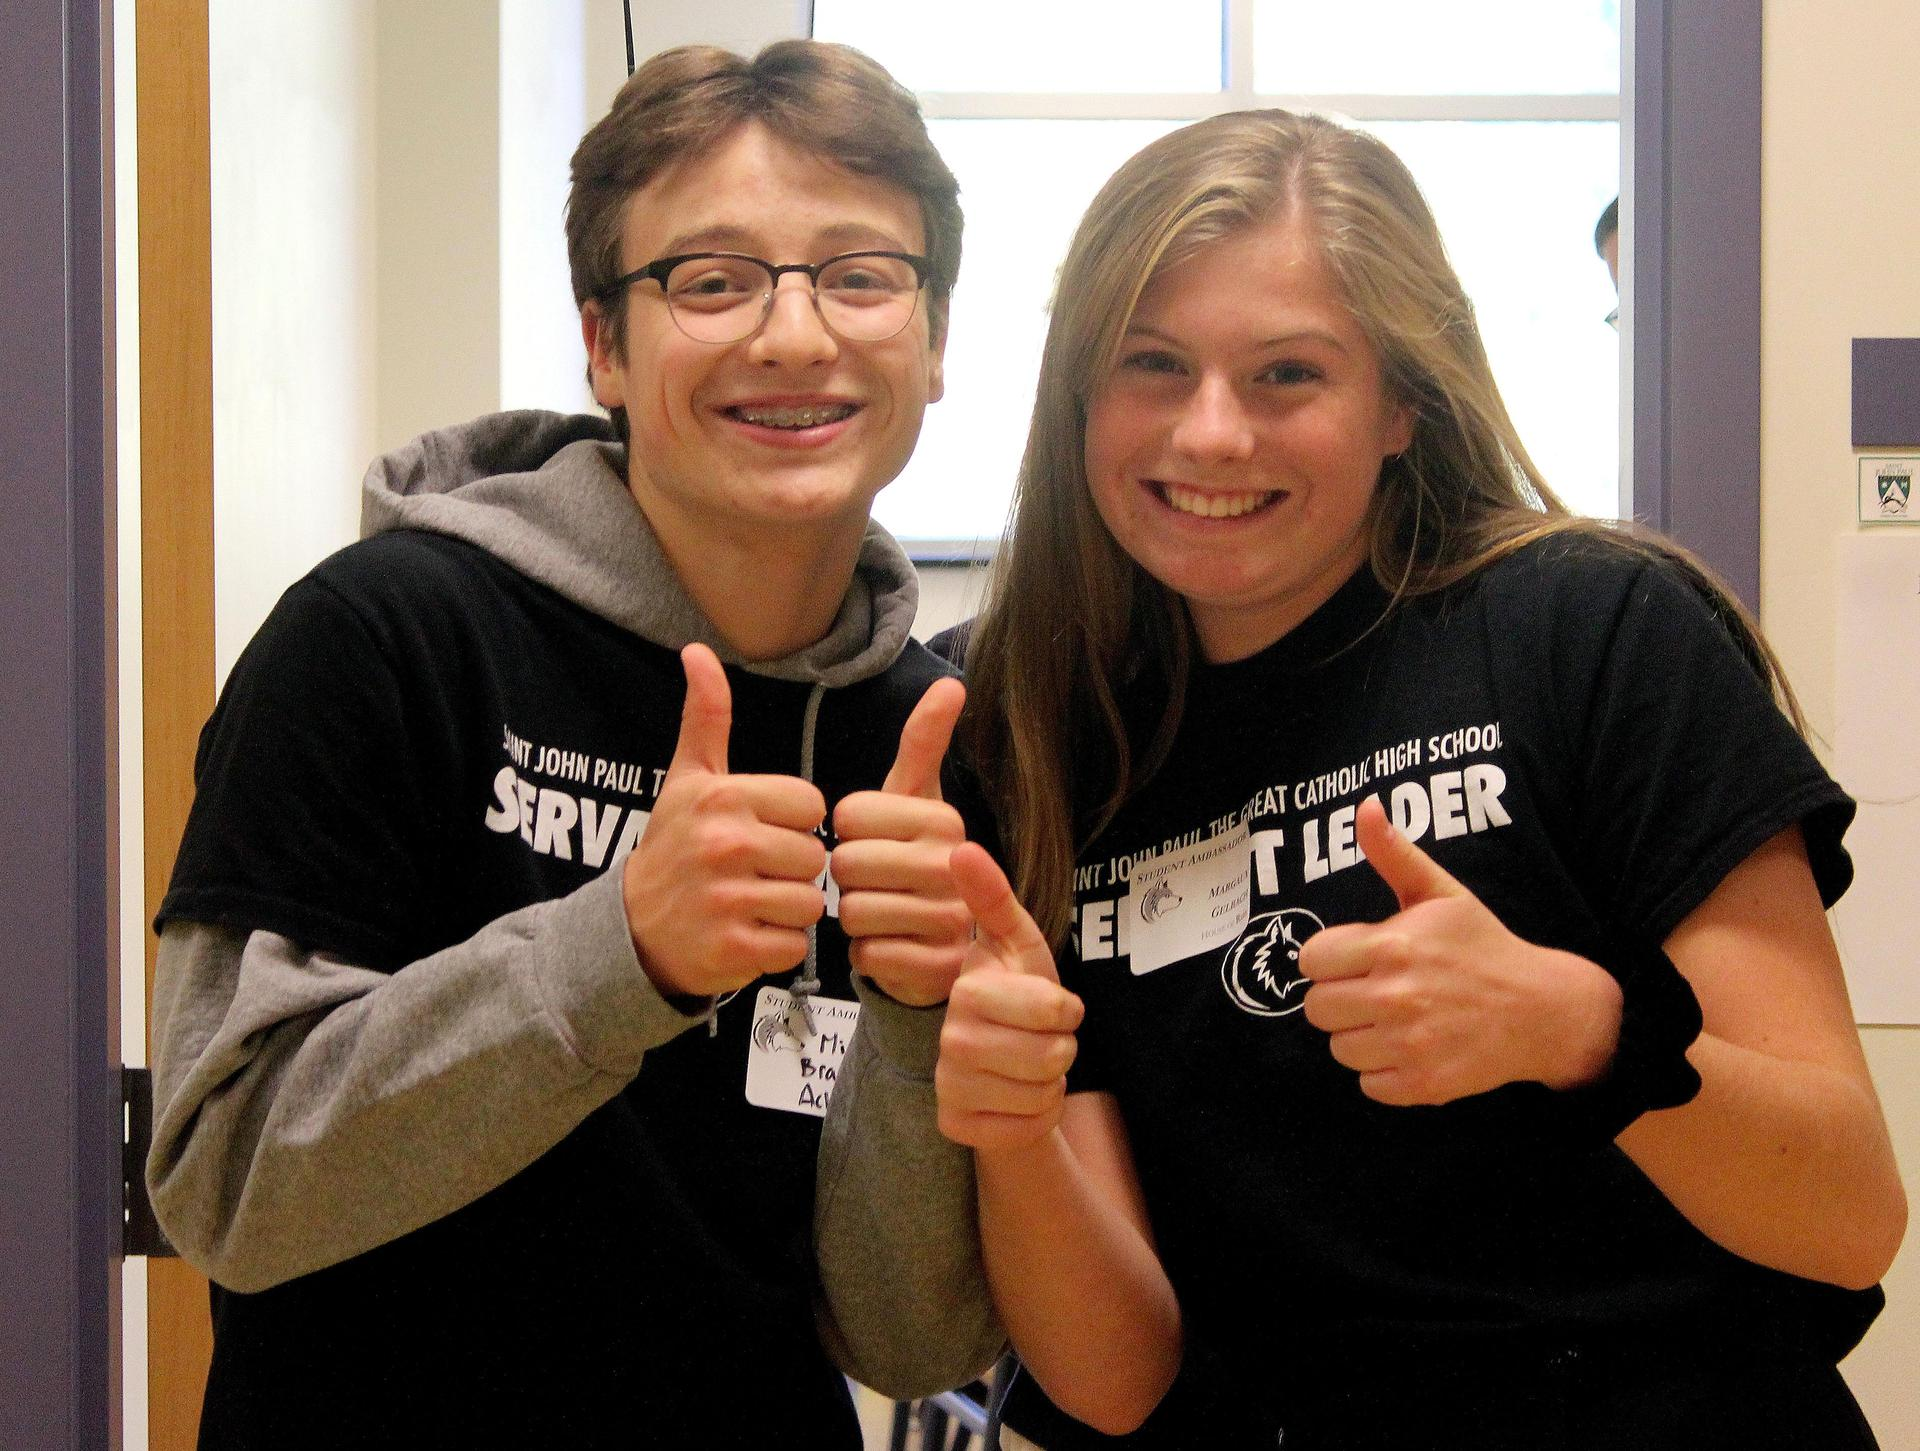 Two servant leaders give a thumbs up to welcome visitors